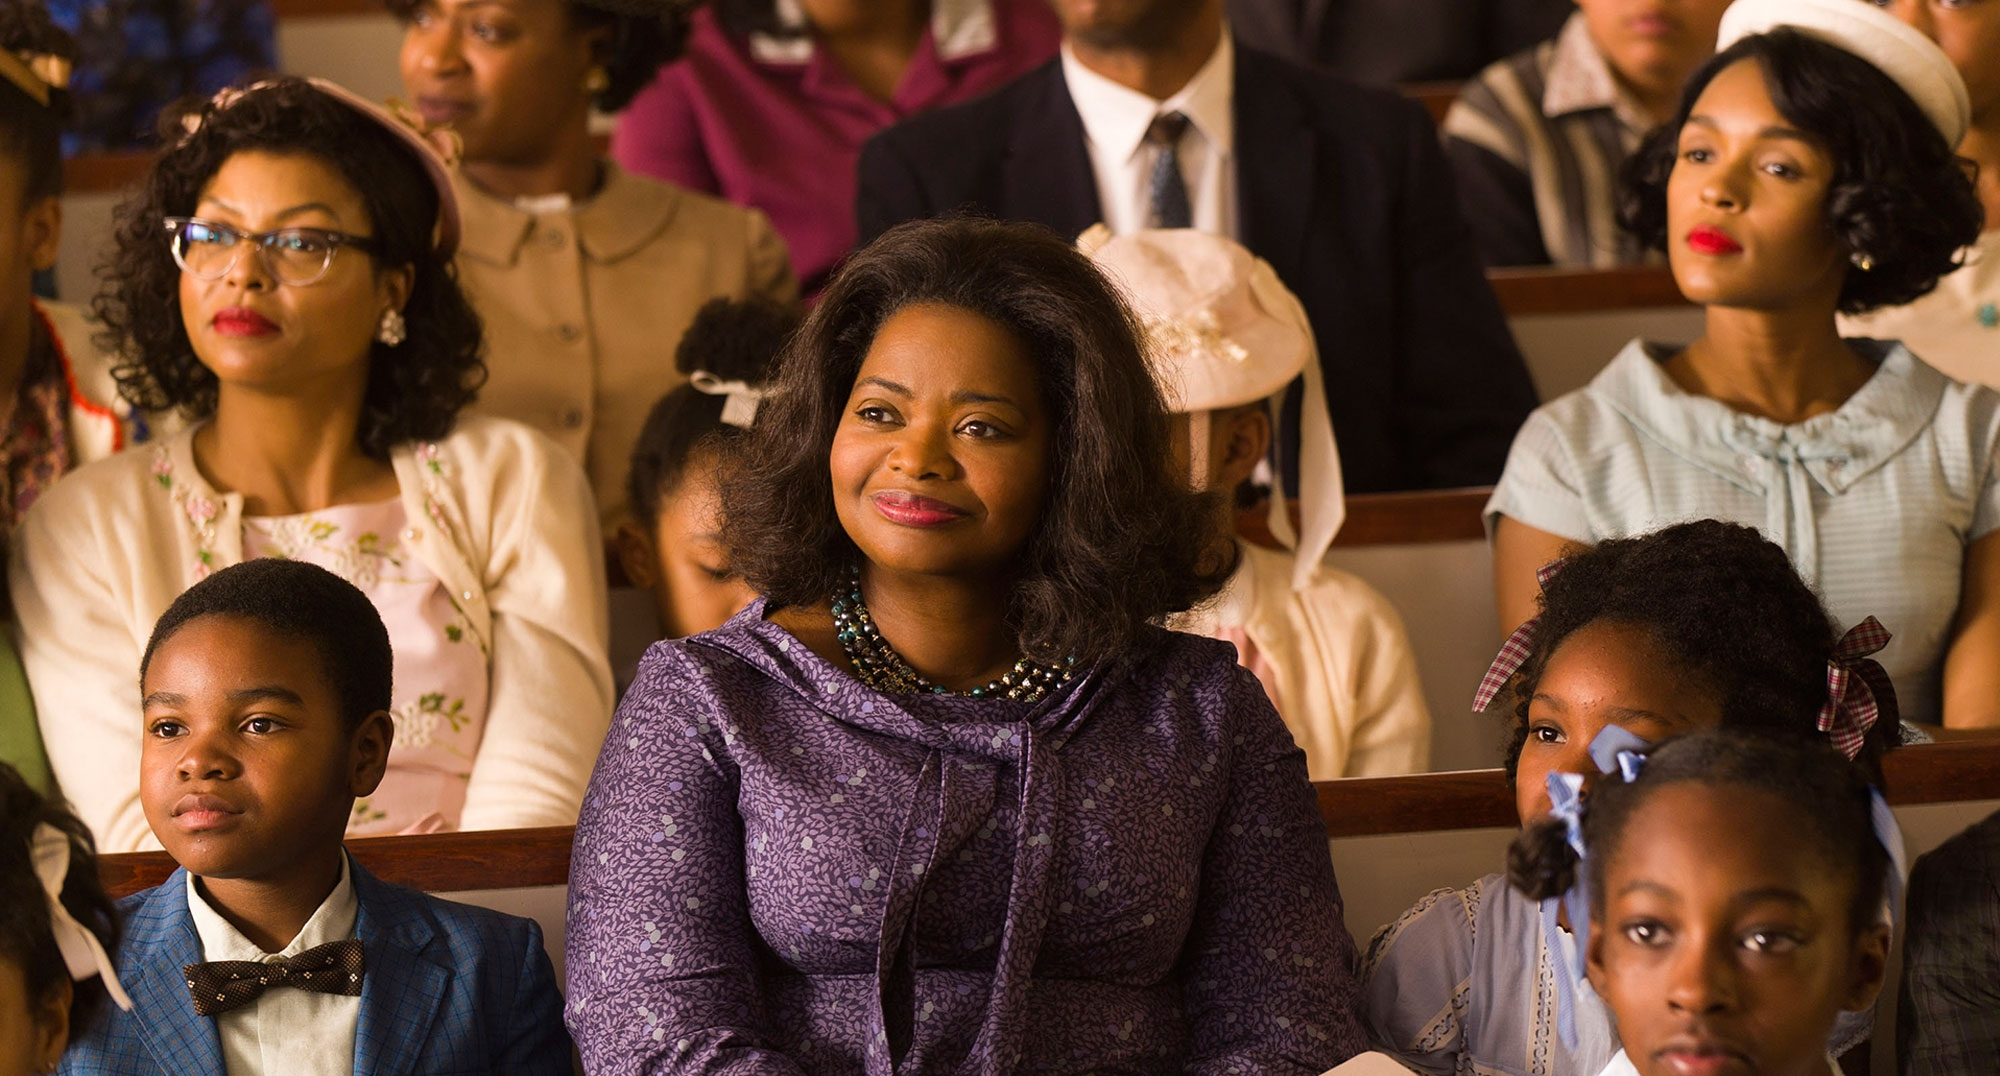 Filmkritik Hidden Figures: Verneigung vor den Computern in Röcken -